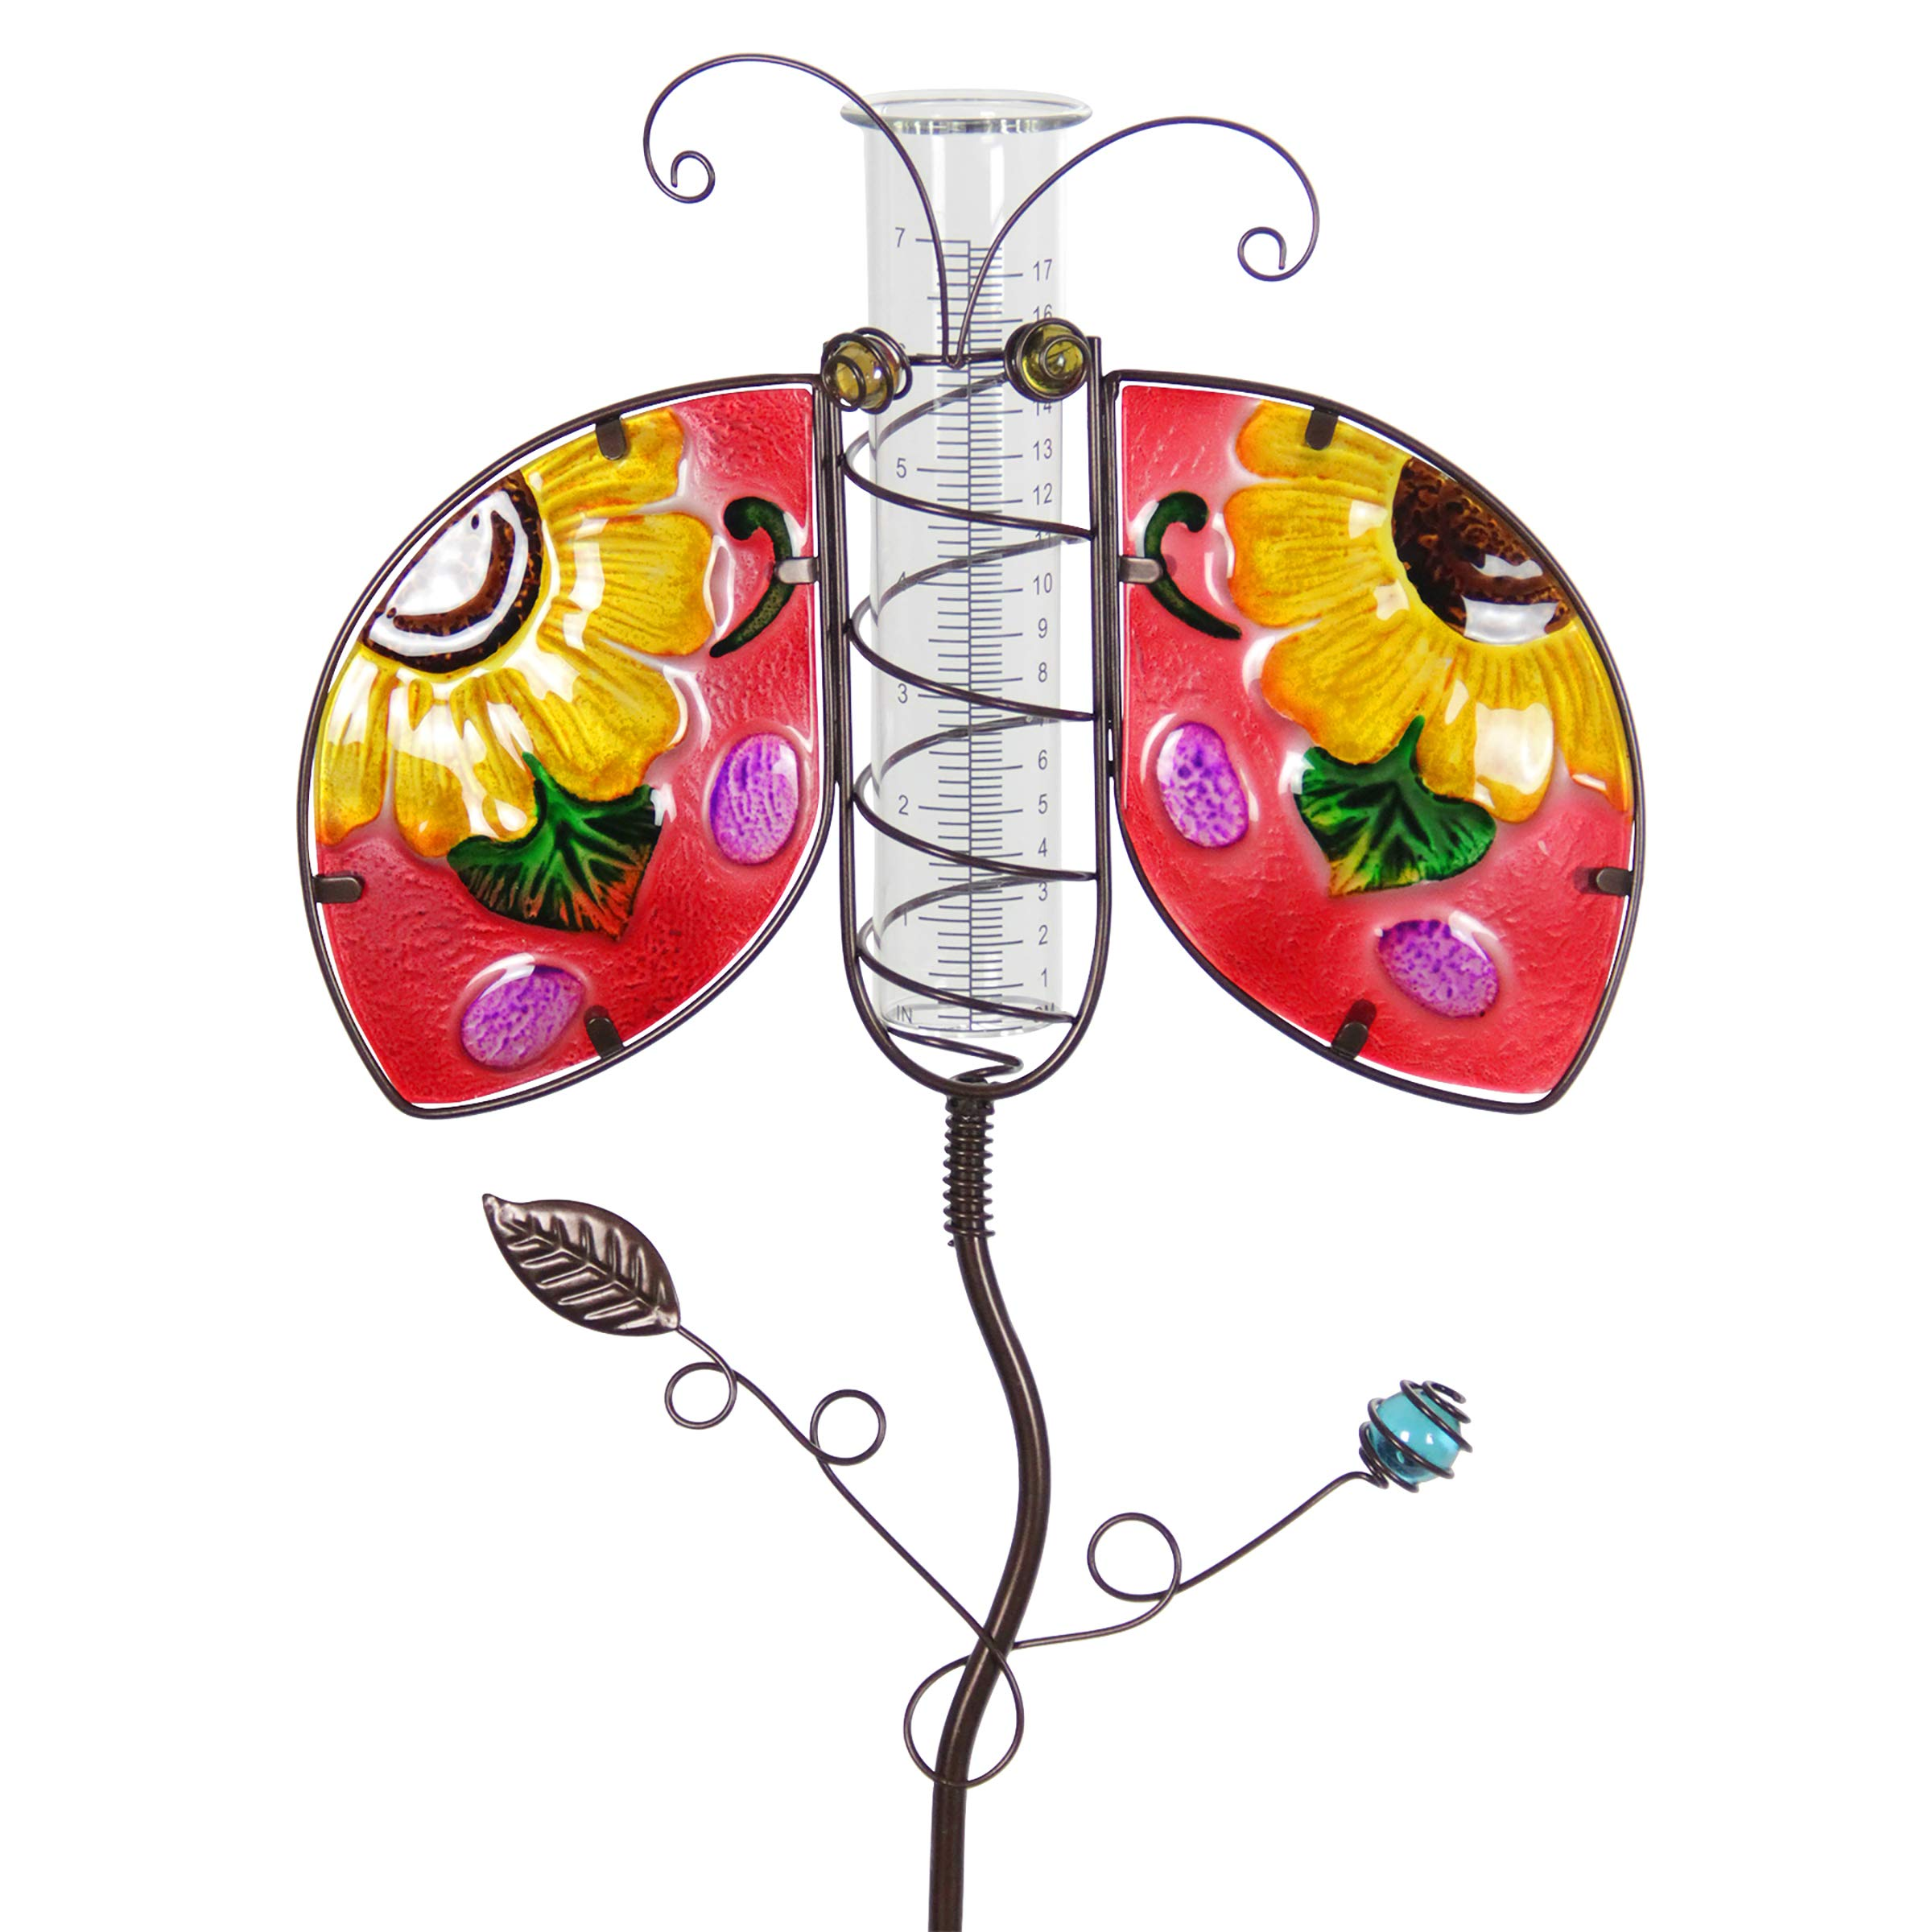 Exhart Red Ladybug Rain Gauge Garden Stake –Ladybug Metal Stake w/Rain Gauge, Made with Fade-Resistant Glass & Metal - Hand-Painted Ladybug Outdoor Decor for Garden, 13 x 35 Inches